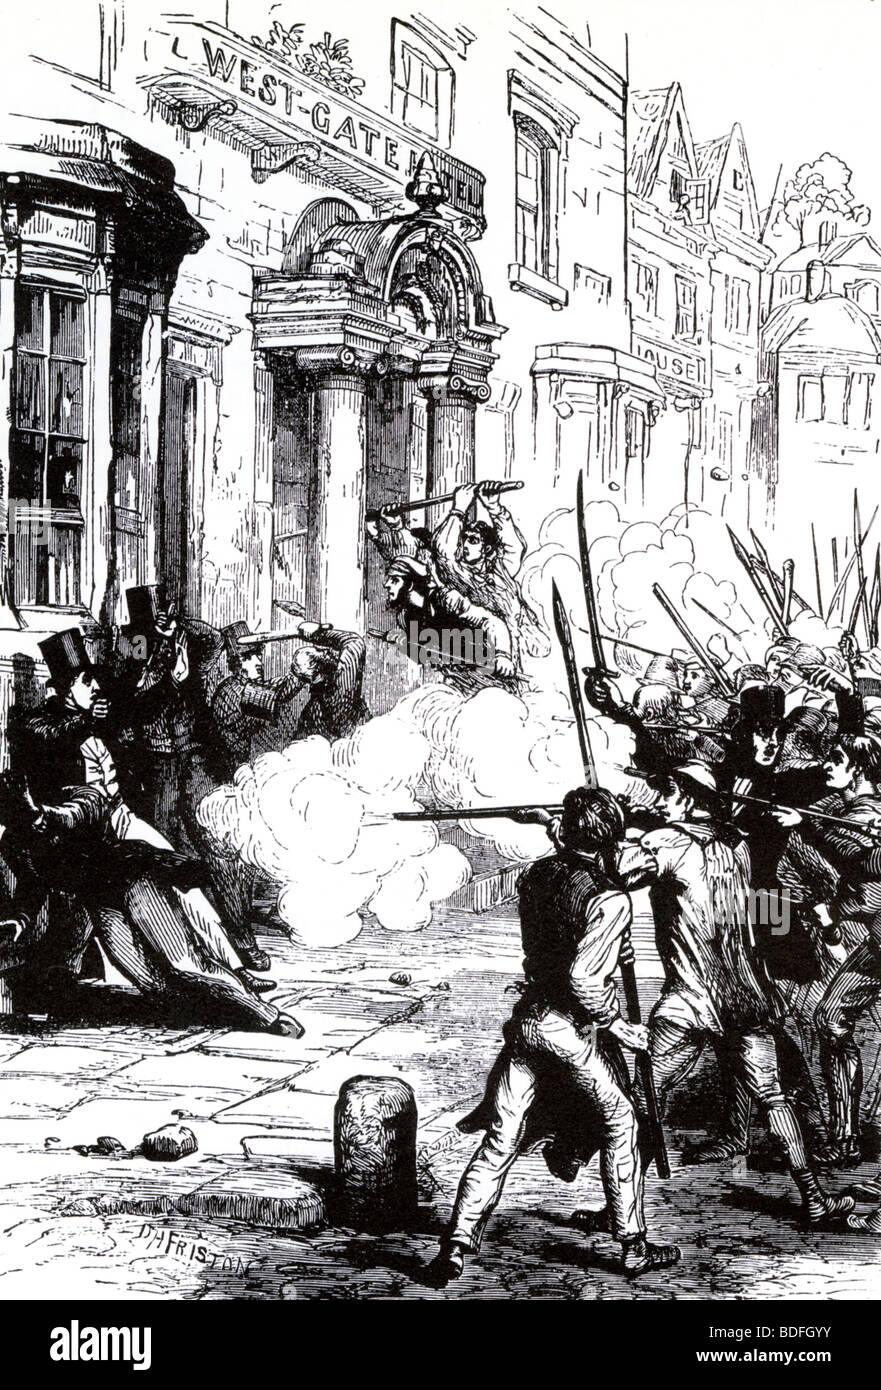 CHARTISTS - armed insurrection Newport, Wales, November 1839, attempting  to release their imprisoned leader Harry - Stock Image